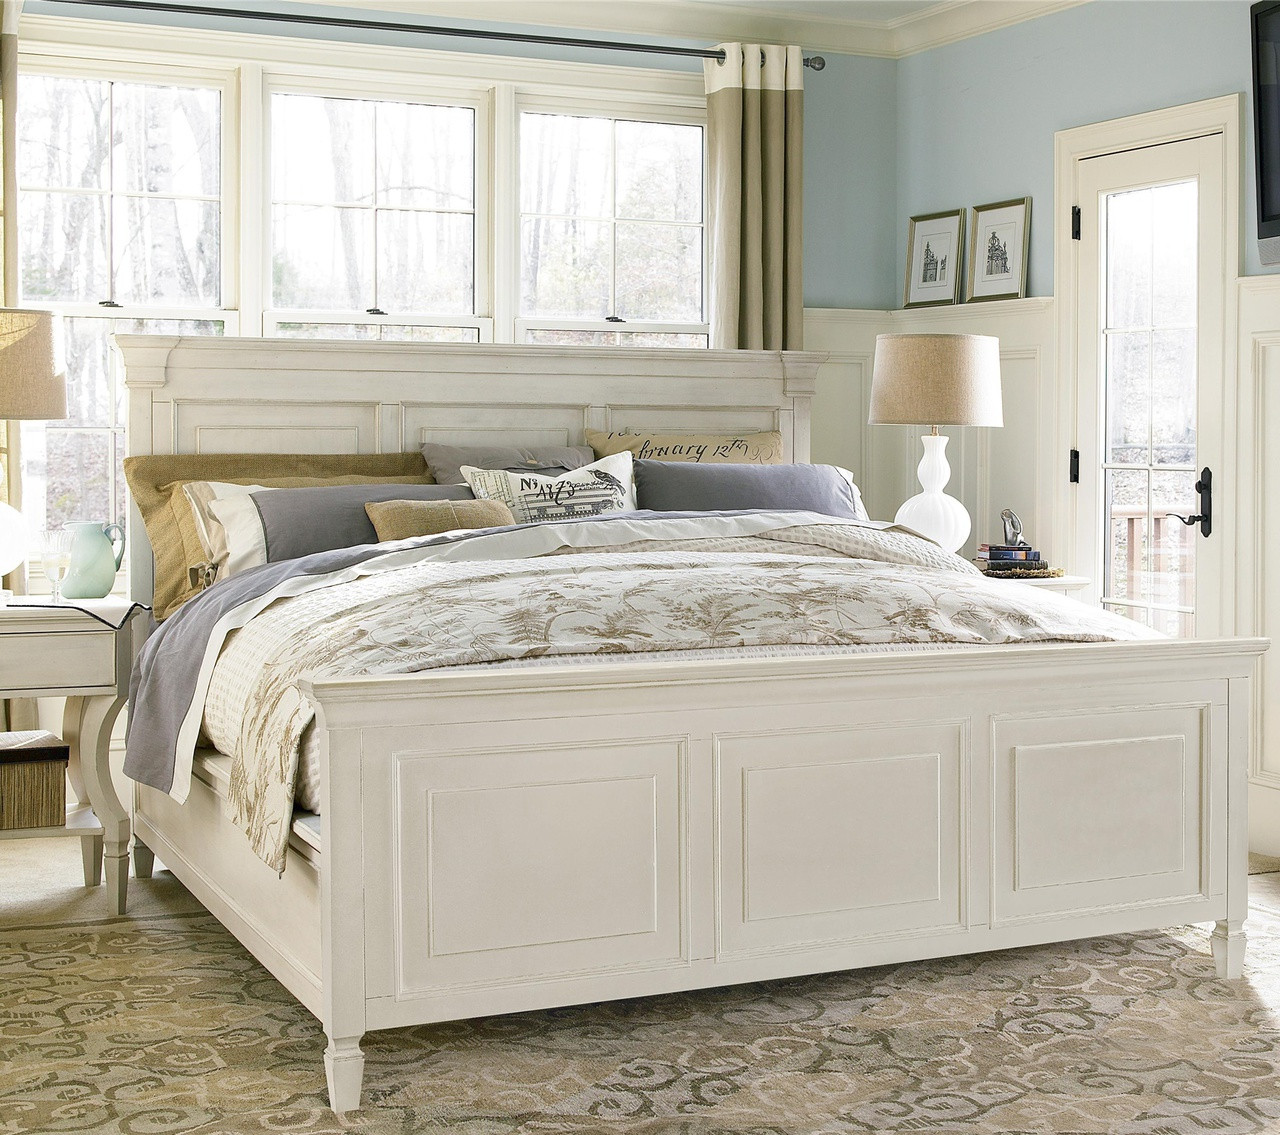 Amazing Country Chic White Queen Size Bed Frame